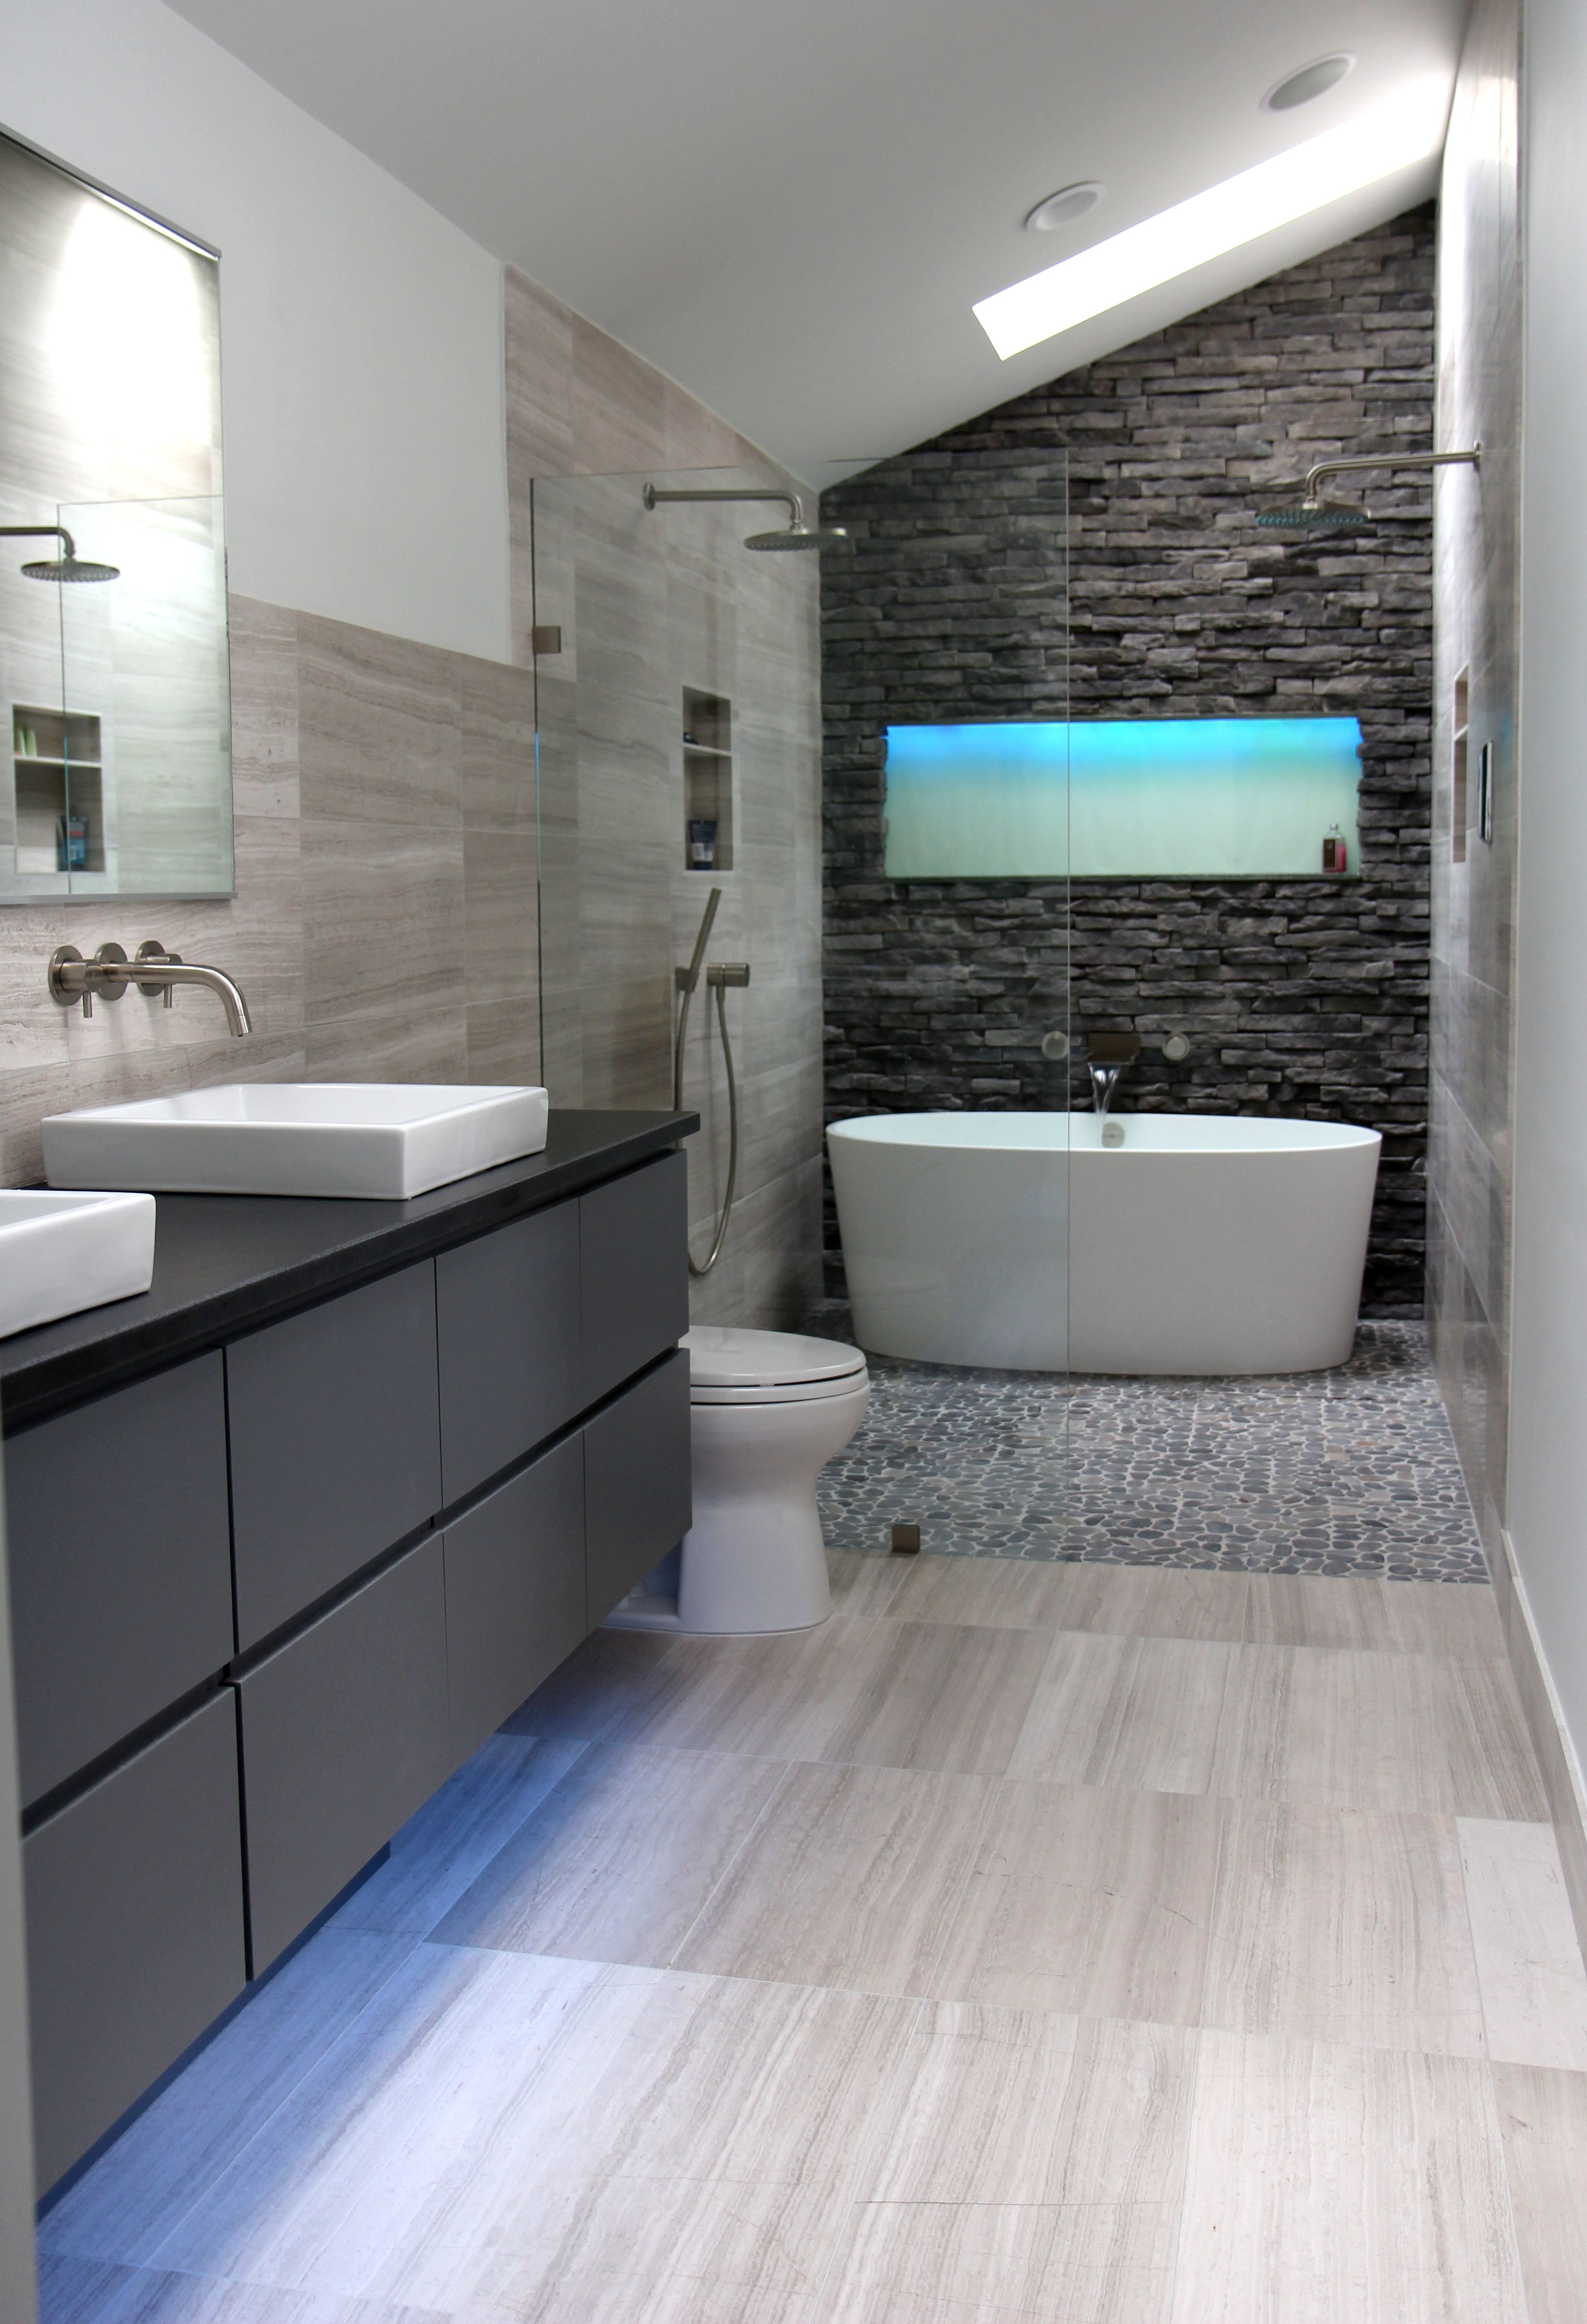 Cool Modern Gray Bathroom Design By Change Your Bathroom | Luxury Master Bathrooms, Modern Master Bathroom, Bathroom Remodel Master